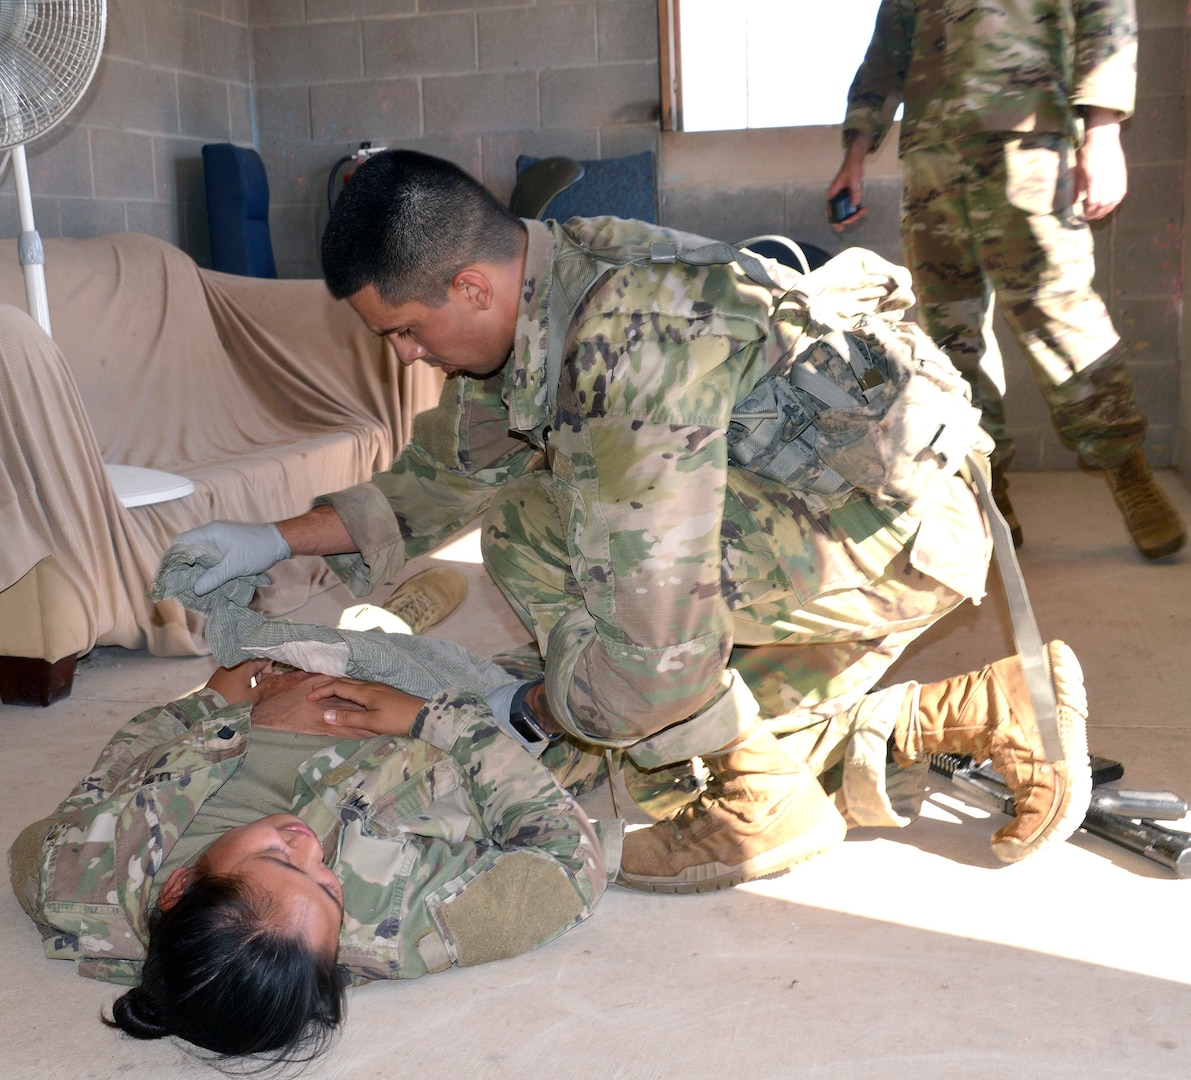 Army Sgt. Kevin Ramirez assesses a casualty during the tactical combat casualty care portion of the Brooke Army Medical Center Best Medic Competition at Joint Base San Antonio-Camp Bullis June 12. The competitors were tested on both warrior and medic skills during the competition.